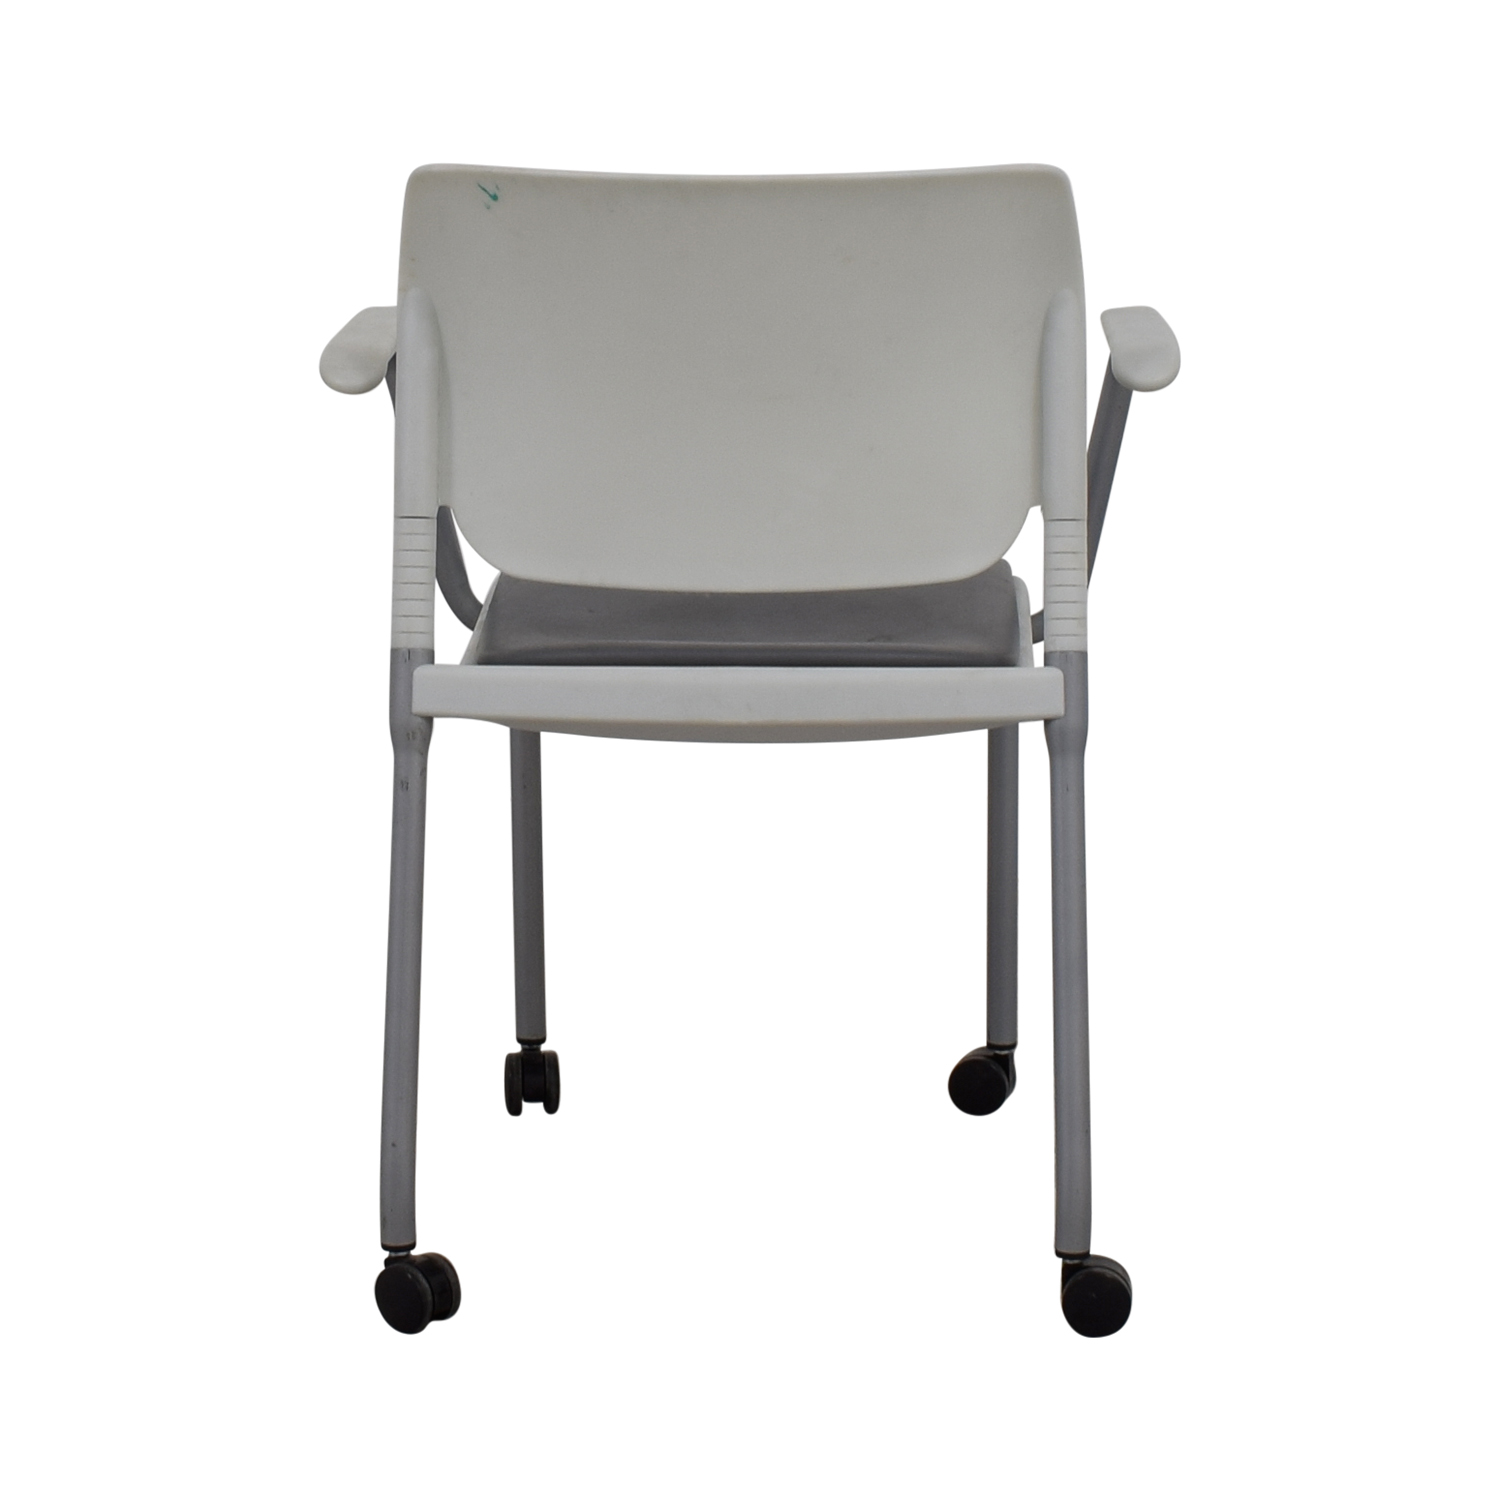 SitOnIt SitOnIt White and Grey Side Chair on Castors coupon